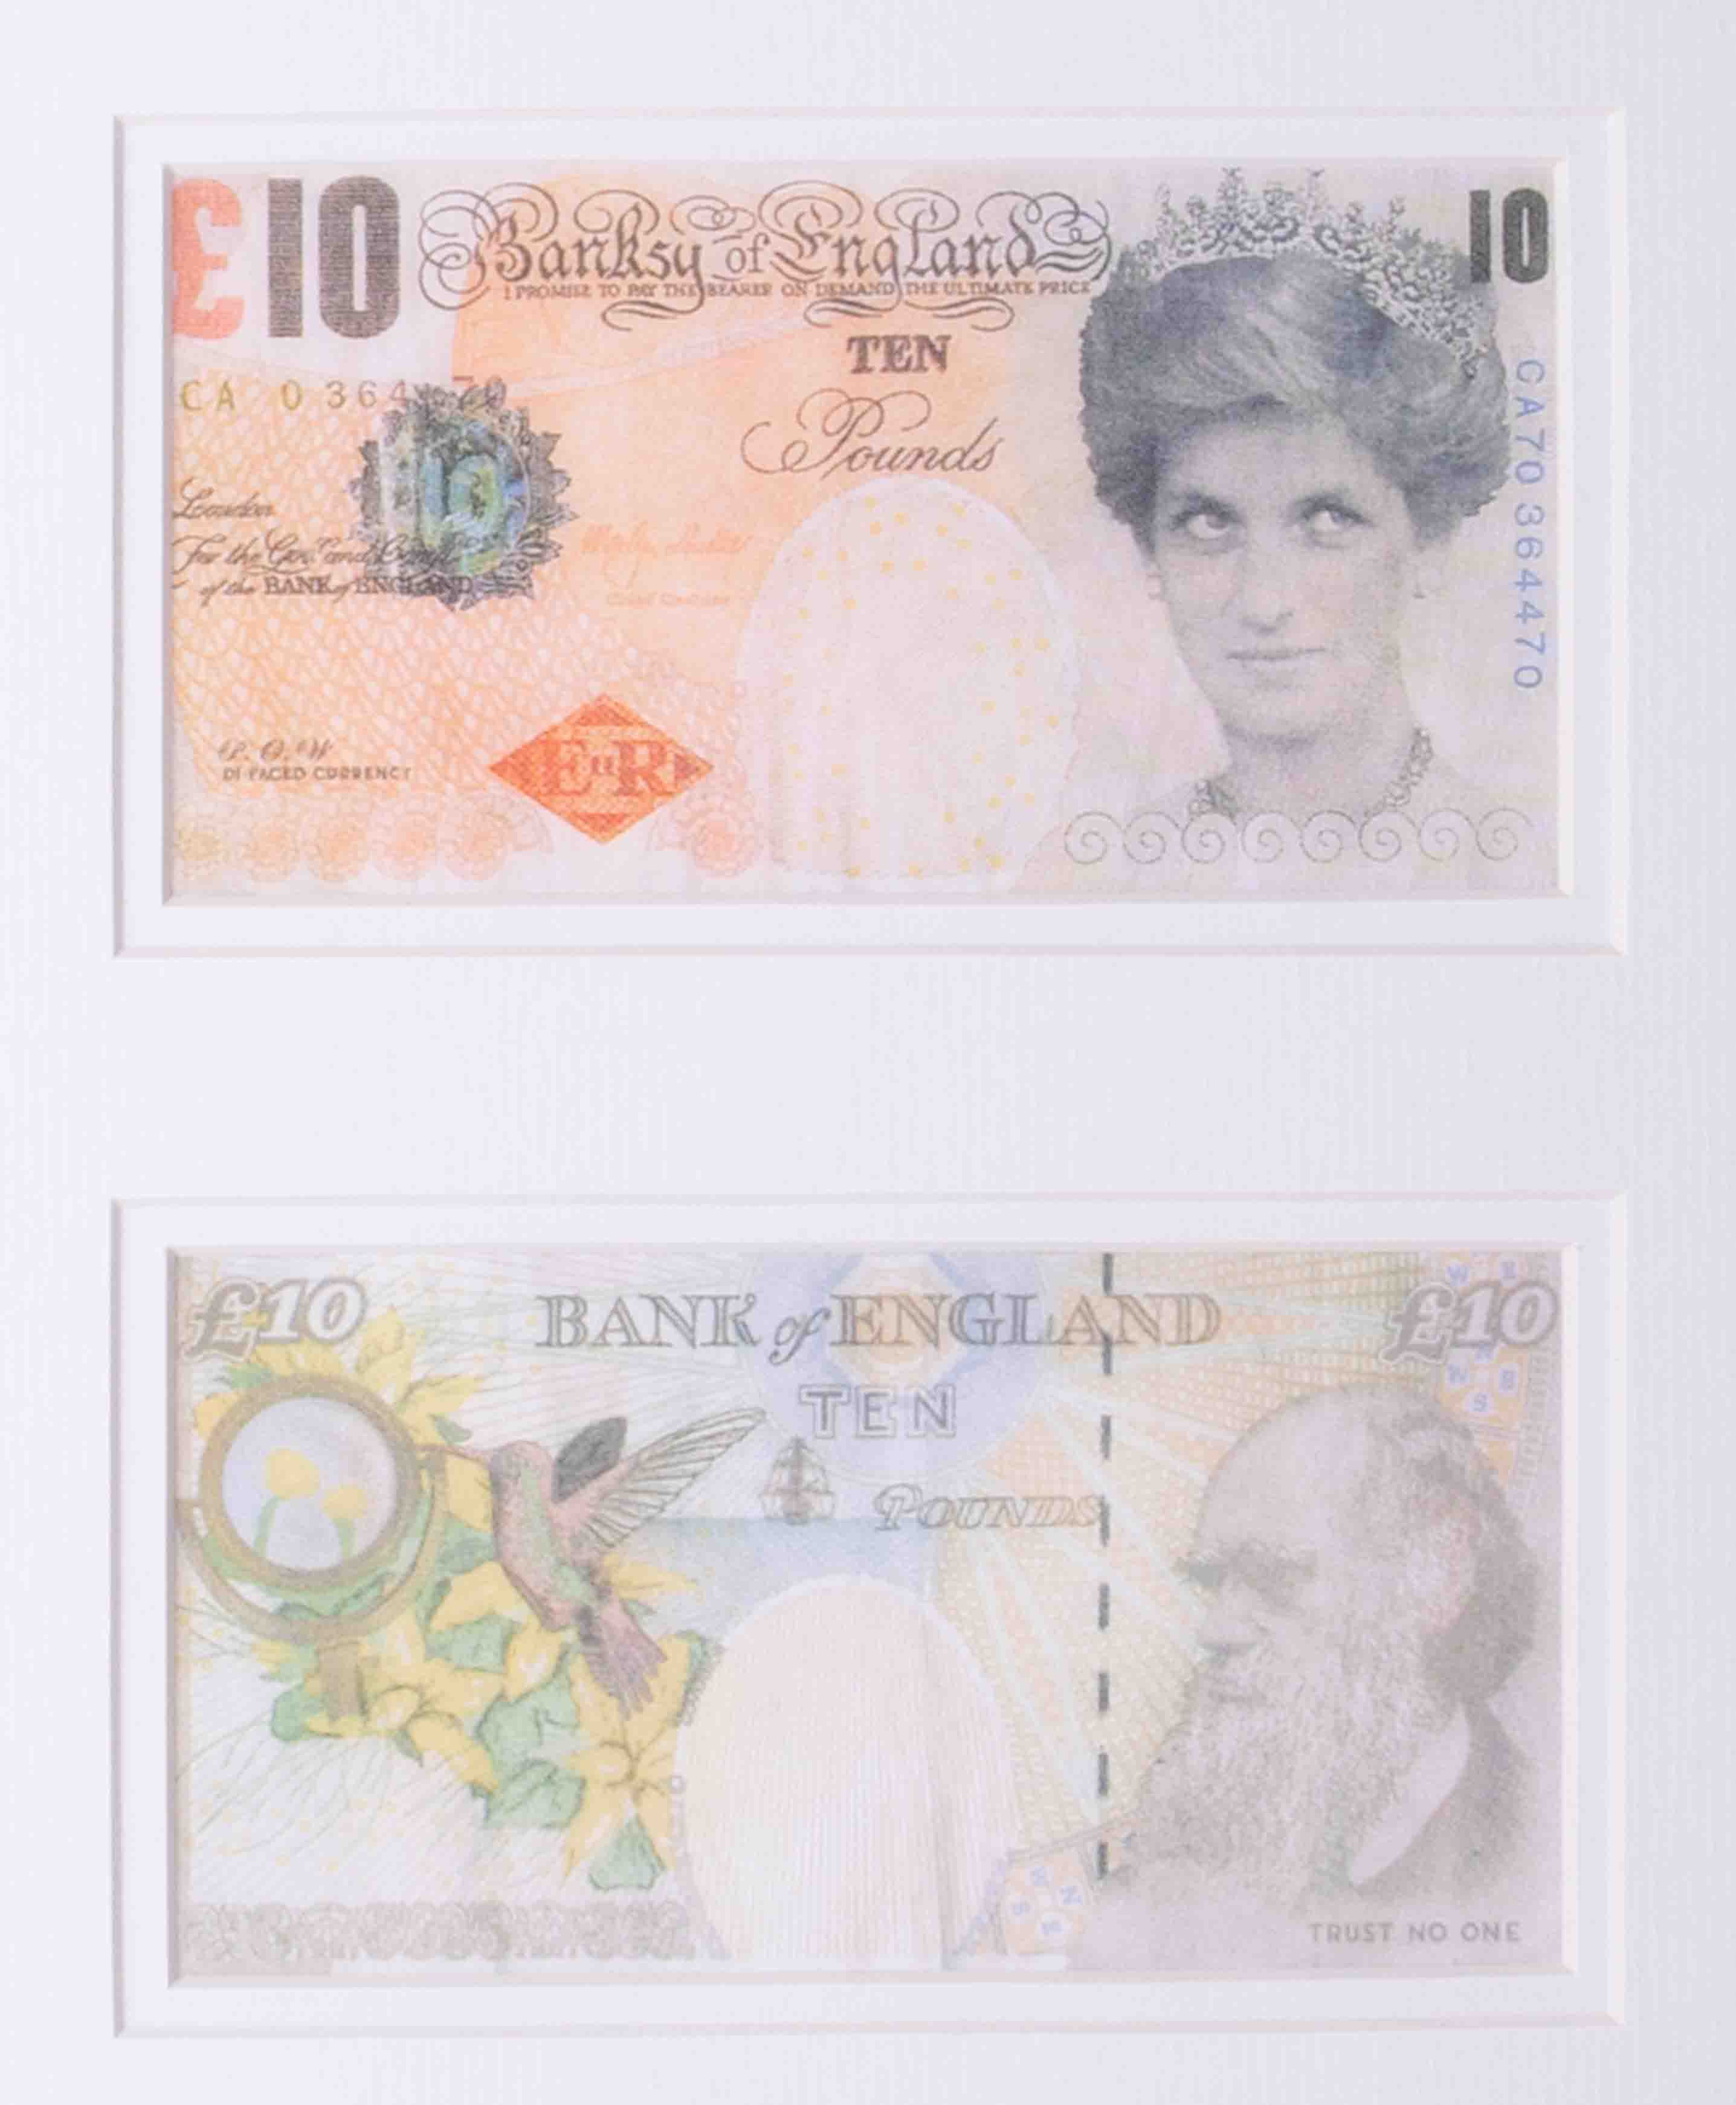 Banksy - 'Two Di-Faced Tenner's', 2004, on paper, Di Faced is a pun on the word, framed and - Image 2 of 3